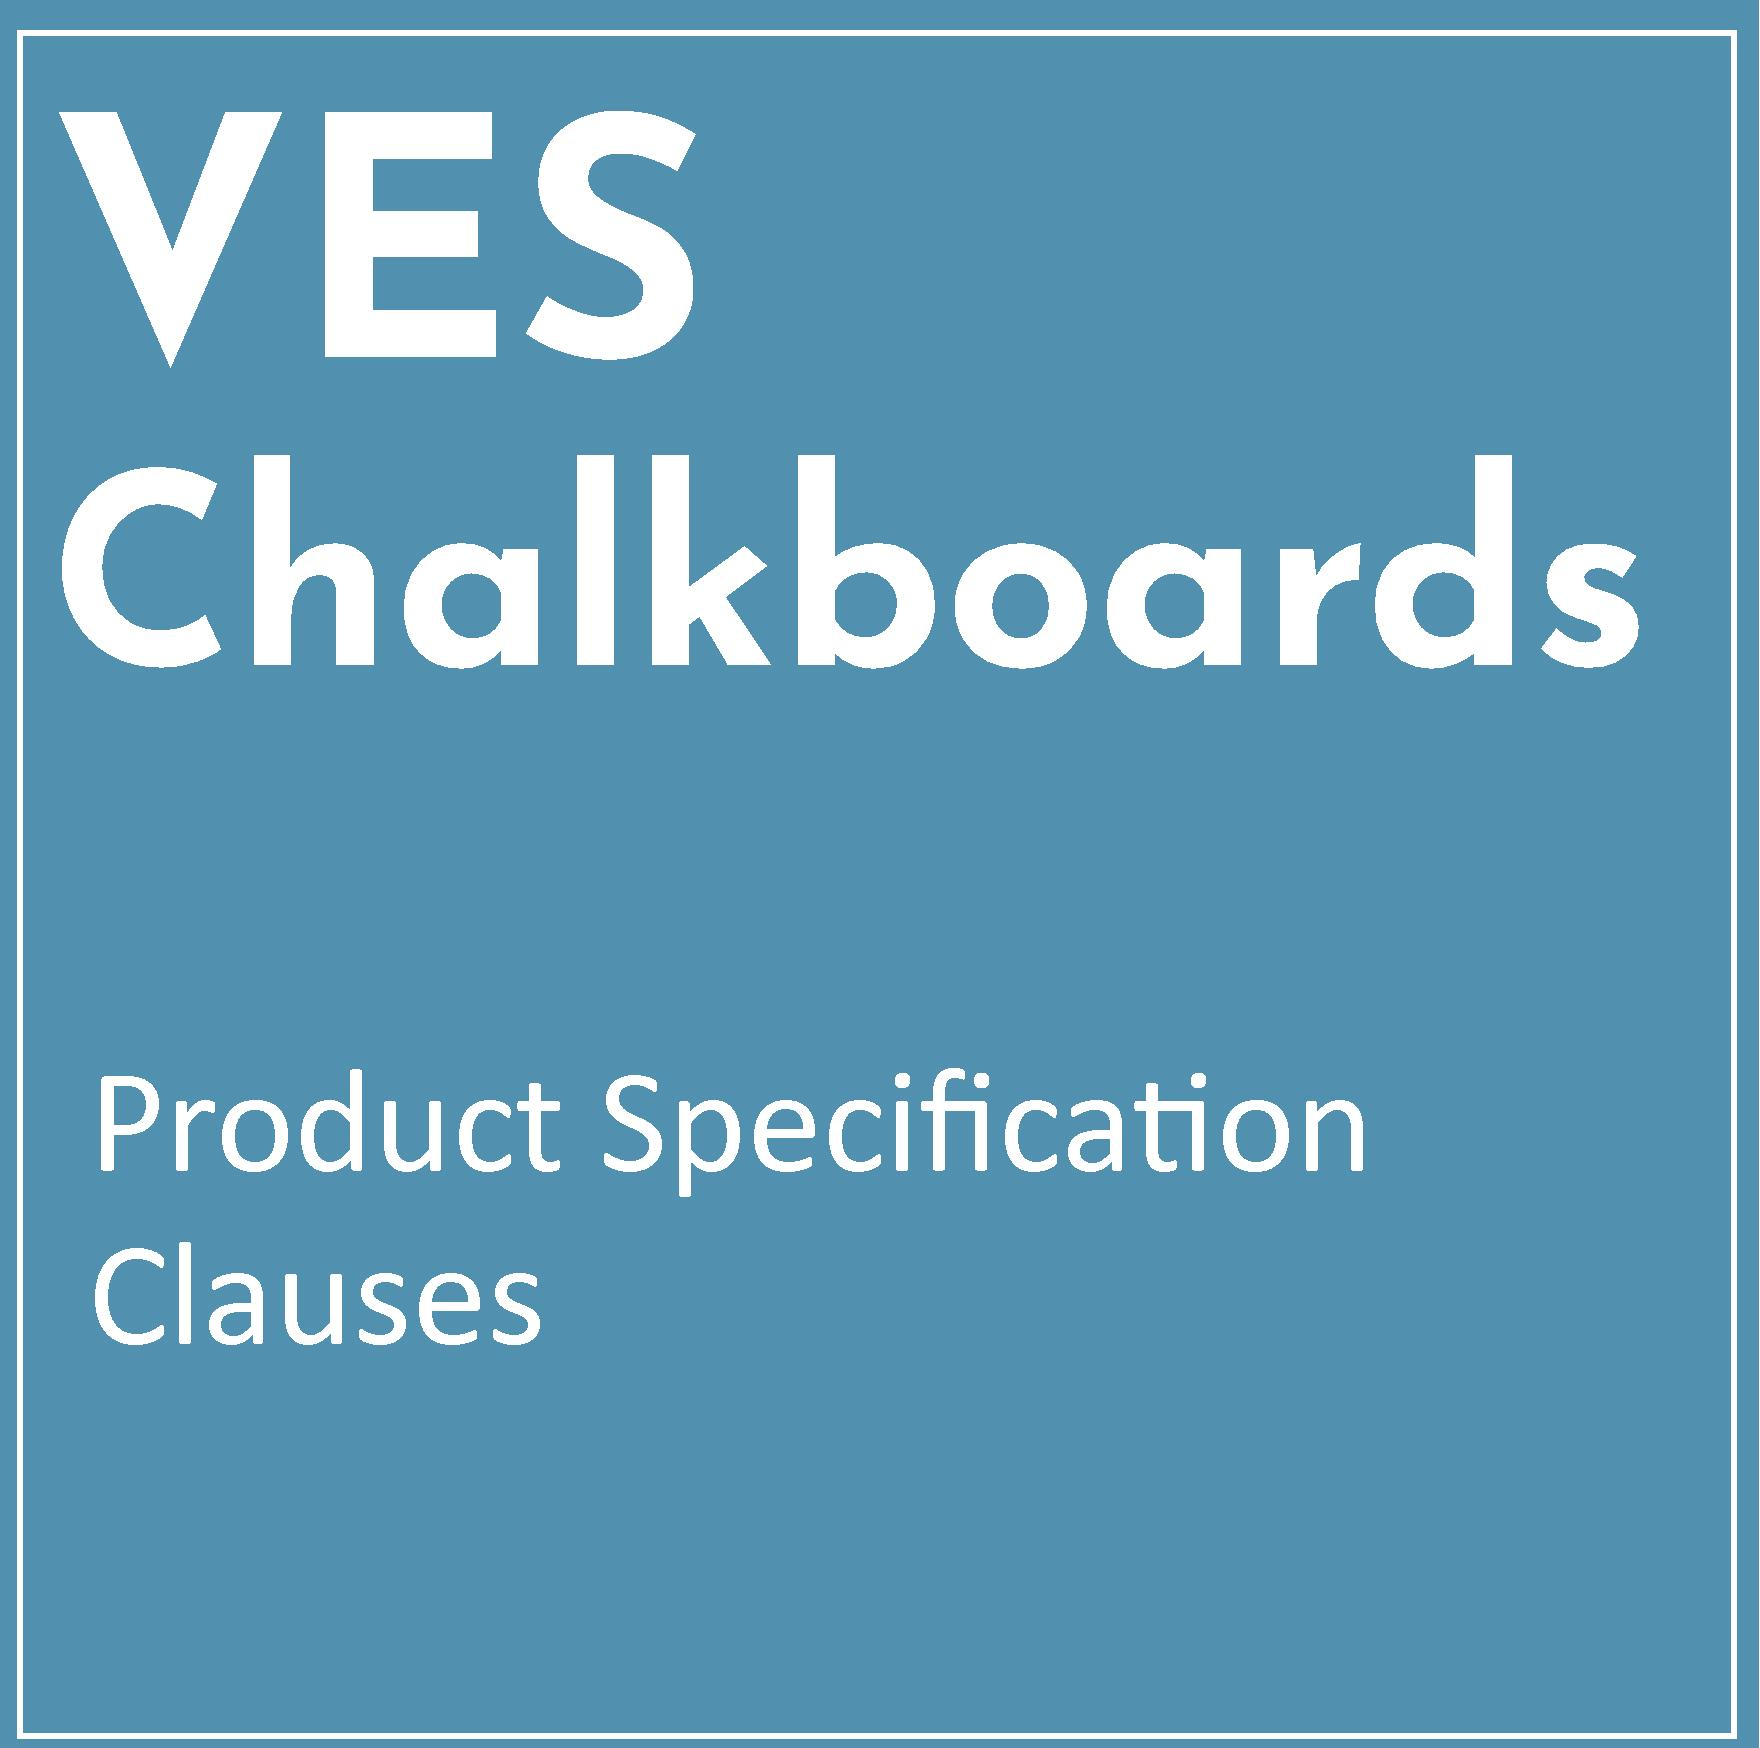 Product Specification Clause – VES Chalkboard